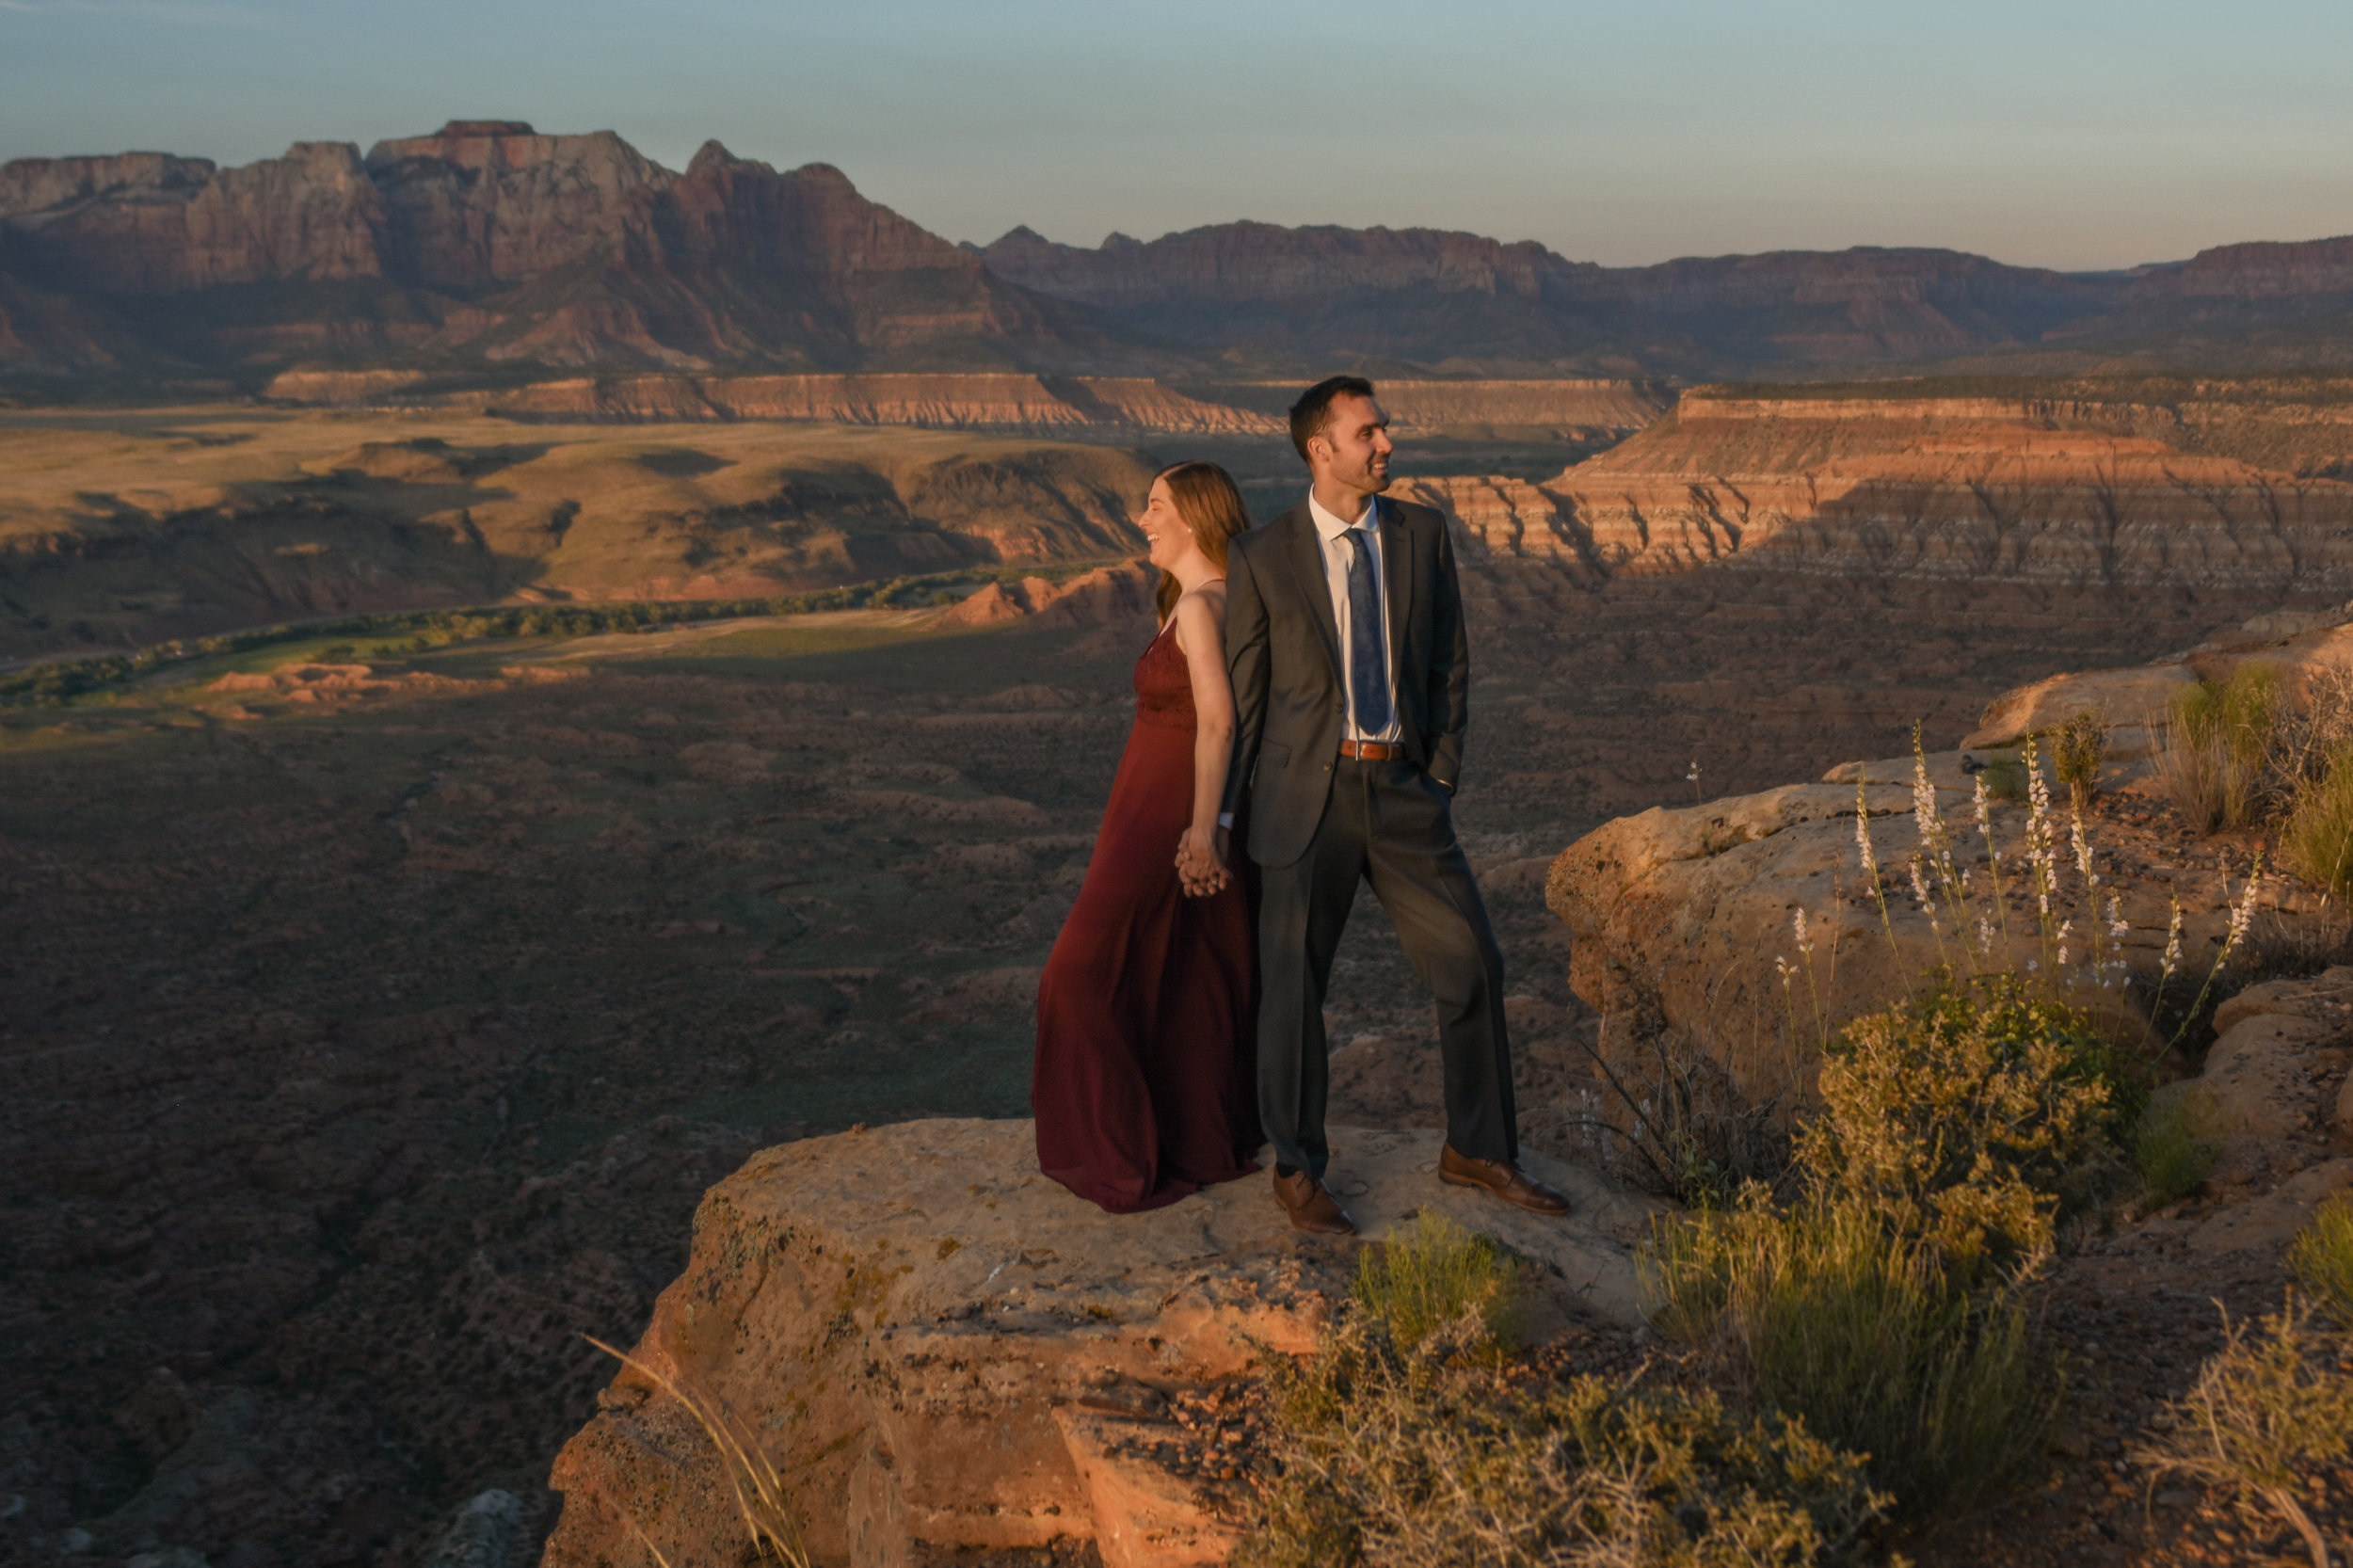 zionnationalparkengagementphotos (41 of 53).jpg